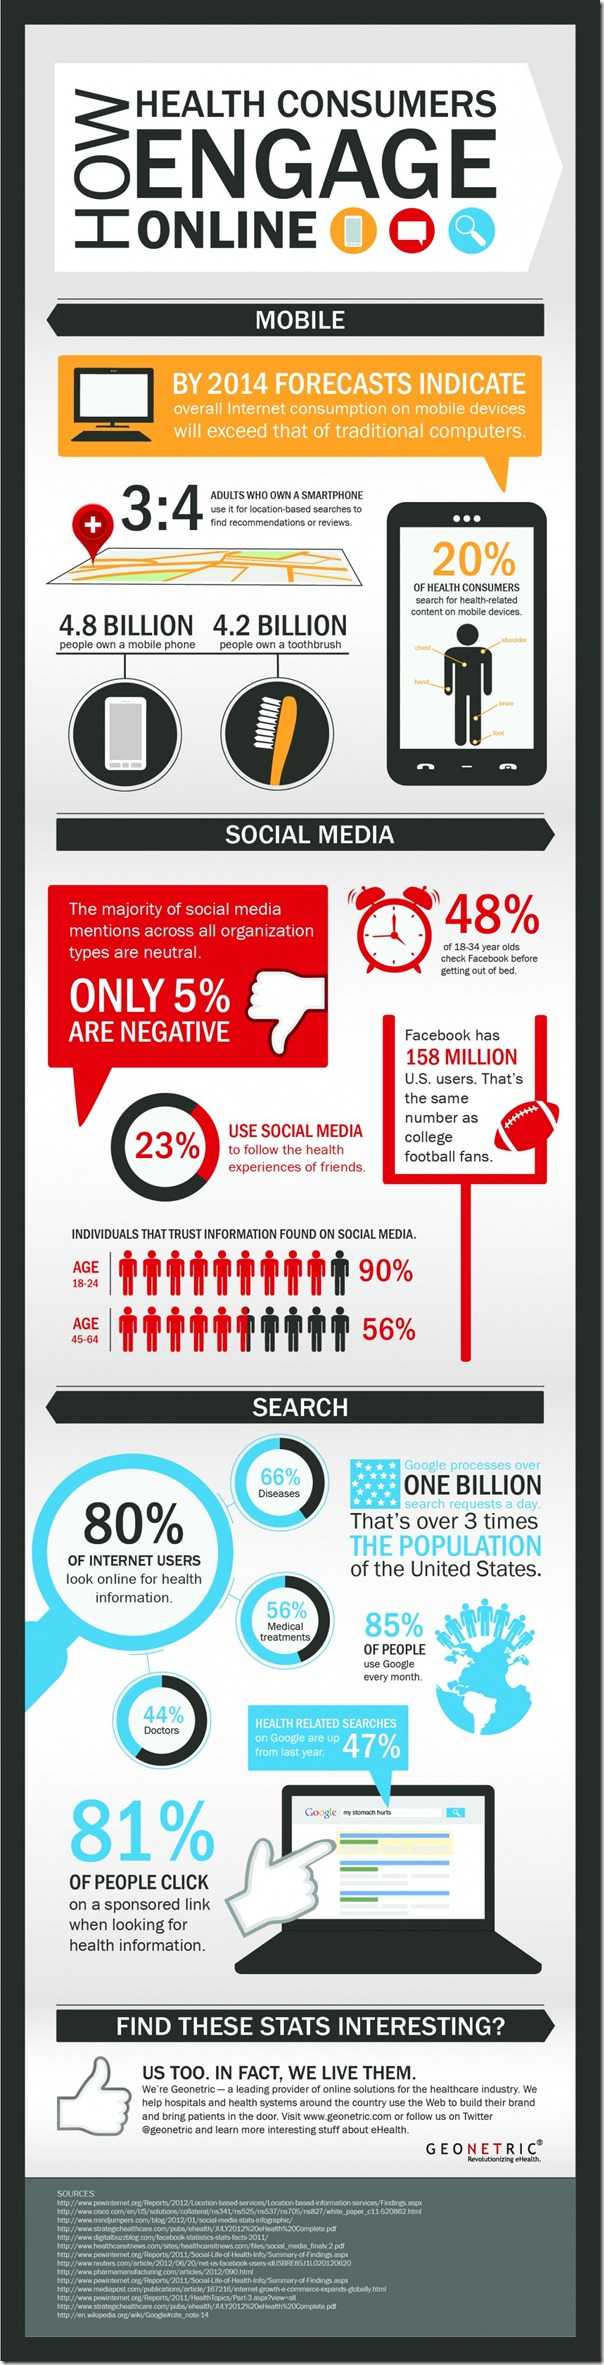 2014 Trends of Health Engagement Online